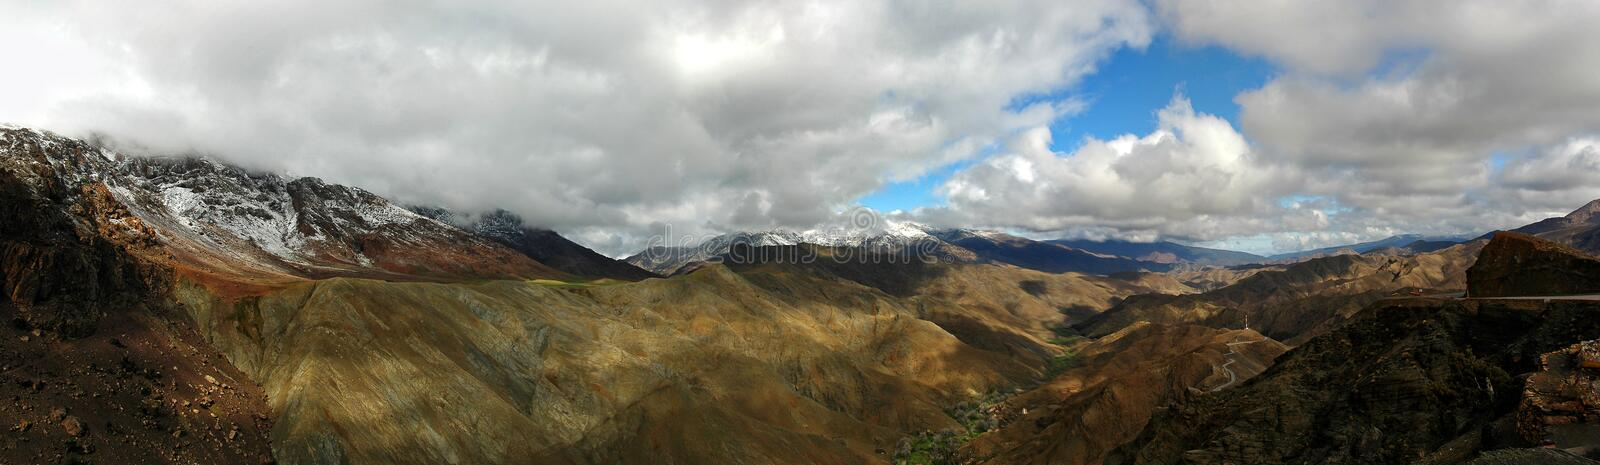 High Atlas panorama. Cloudy nature landscape - panorama of famous mountains High Atlas. Morocco, Africa royalty free stock photos